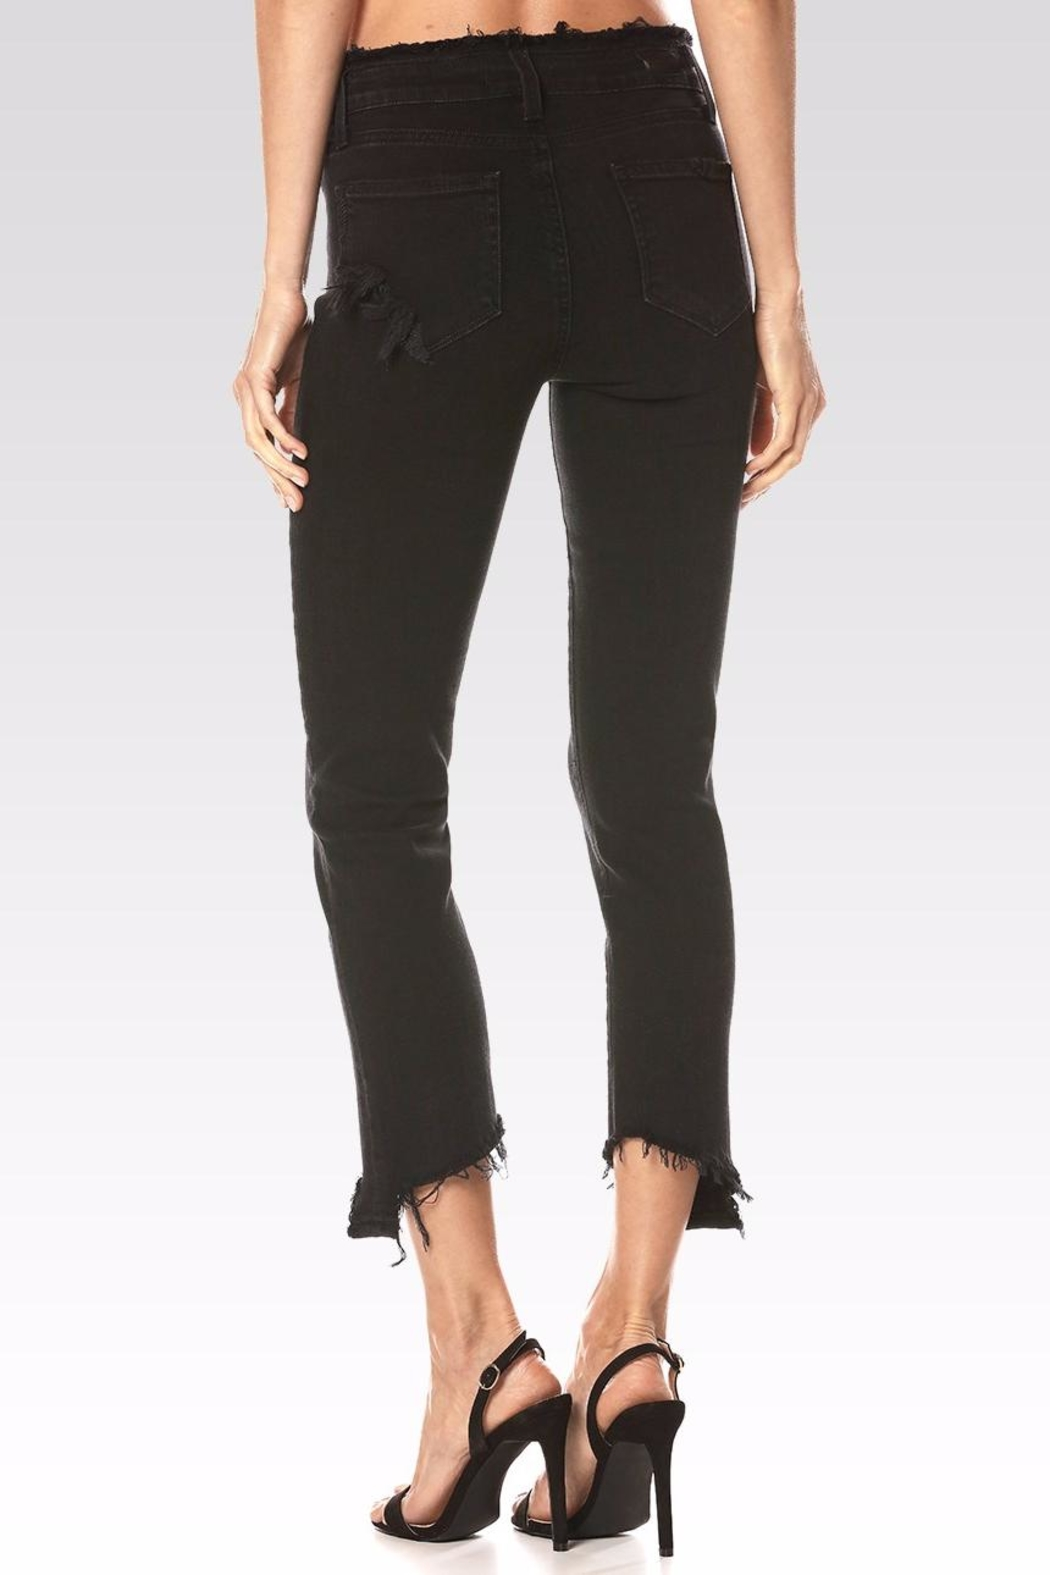 Paige Julia Angled Frayed Jeans - Side Cropped Image